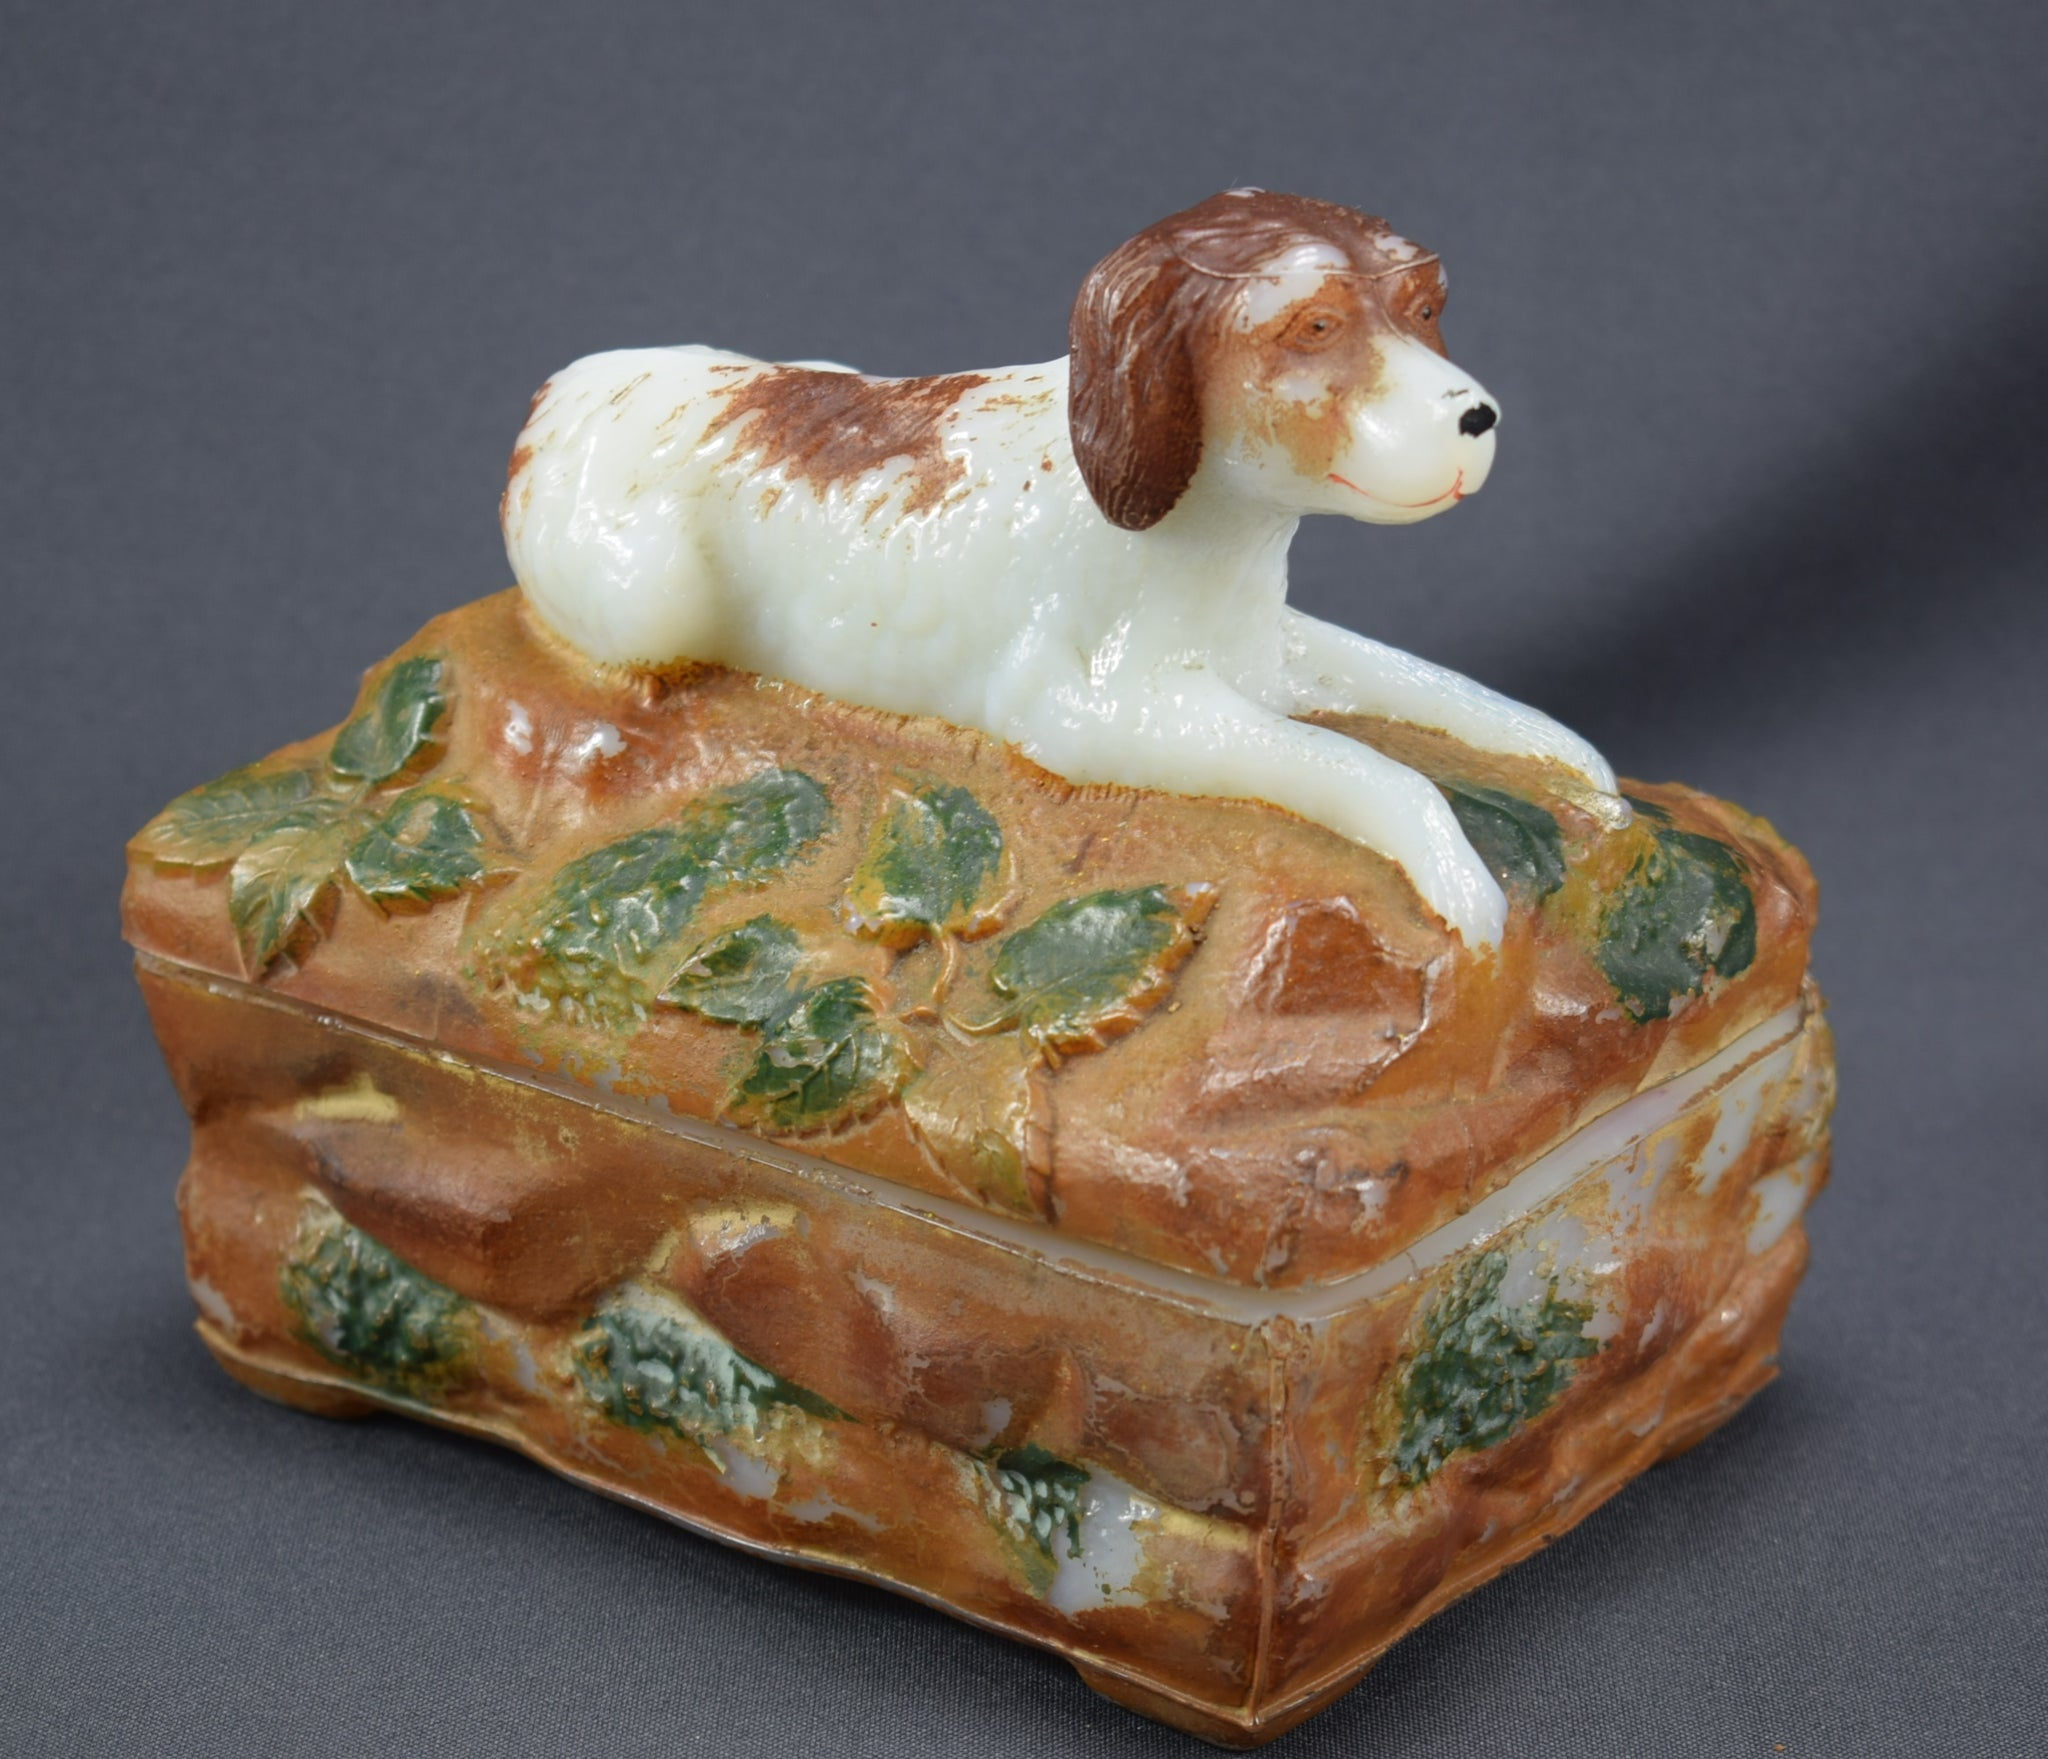 Vallerysthal Opaline Hunting Dog Jewelry Box Antique French Hand Painted Milk Glass Opaline Candy Box with Dog